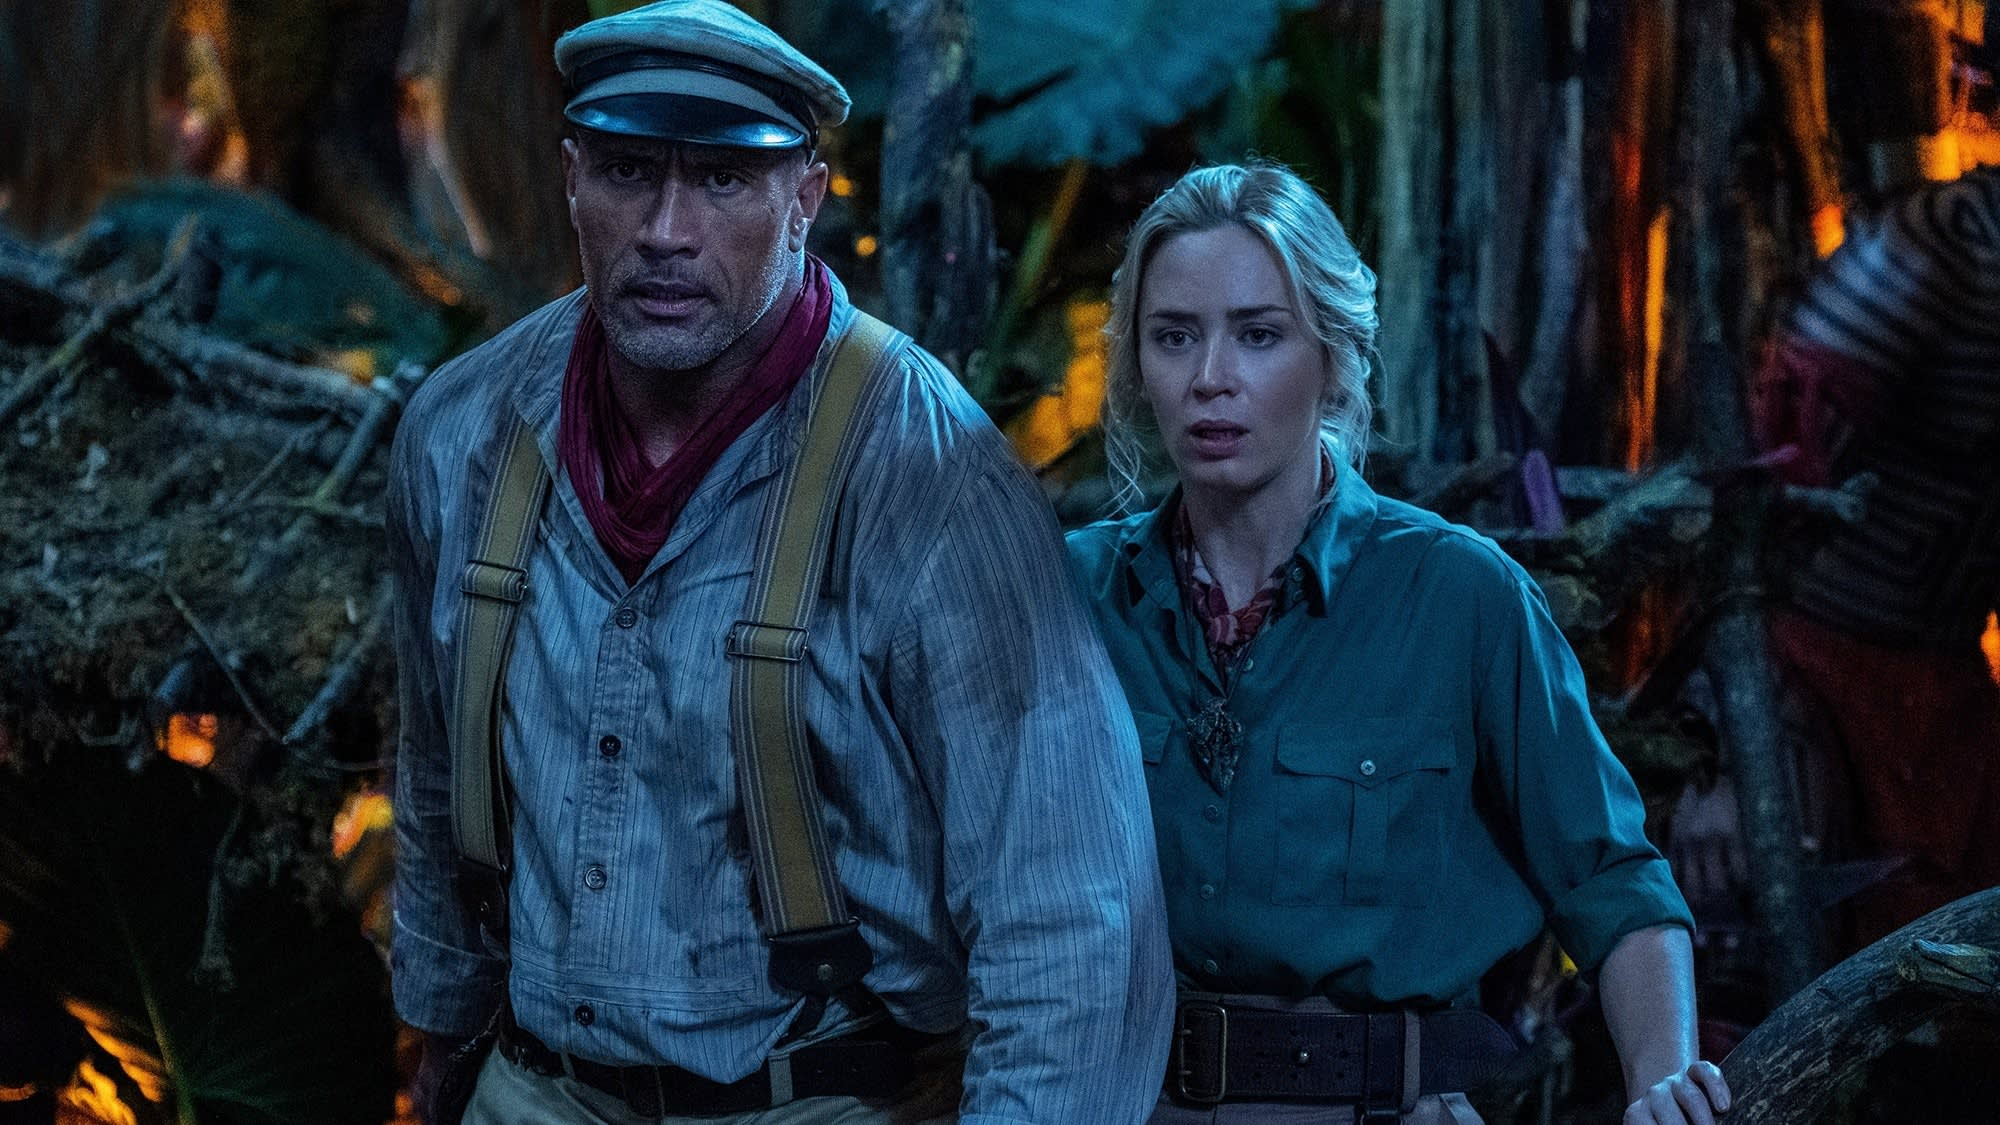 'Jungle Cruise' tallies $34.2 million in domestic debut, adds $30 million from Disney+